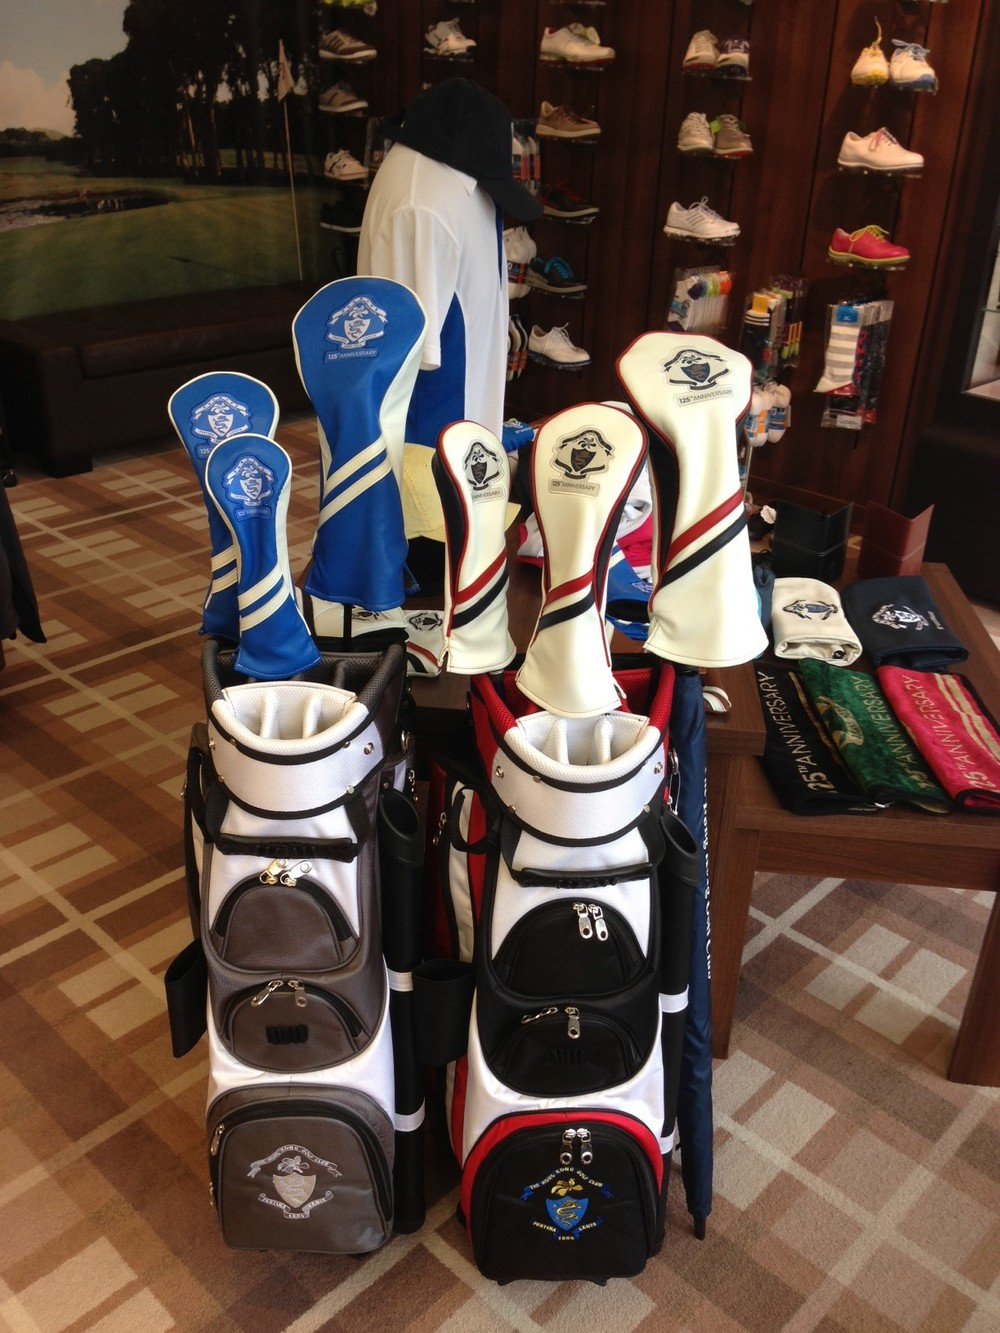 HKGC 125th Golf Bag and Headcovers display.JPG